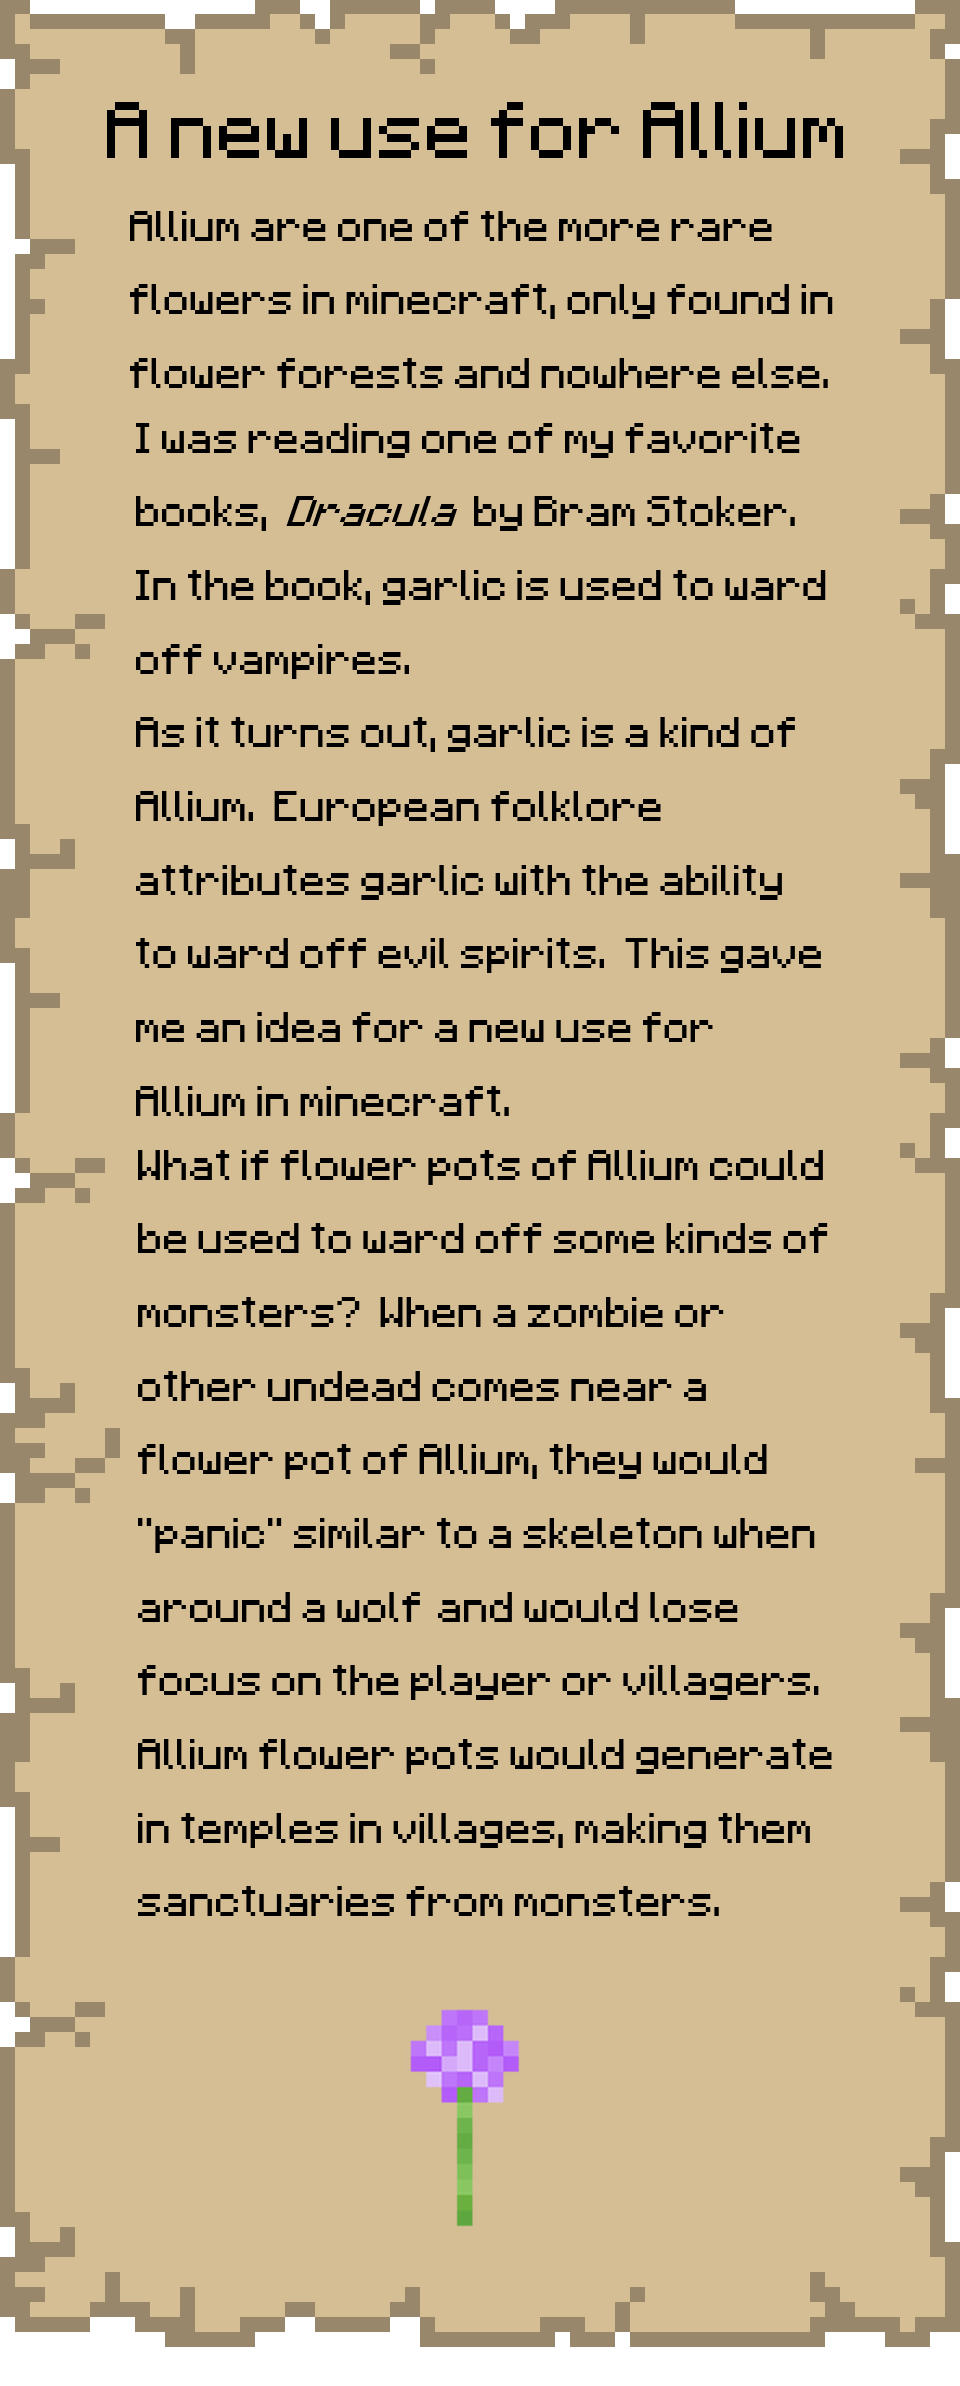 allium suggestion